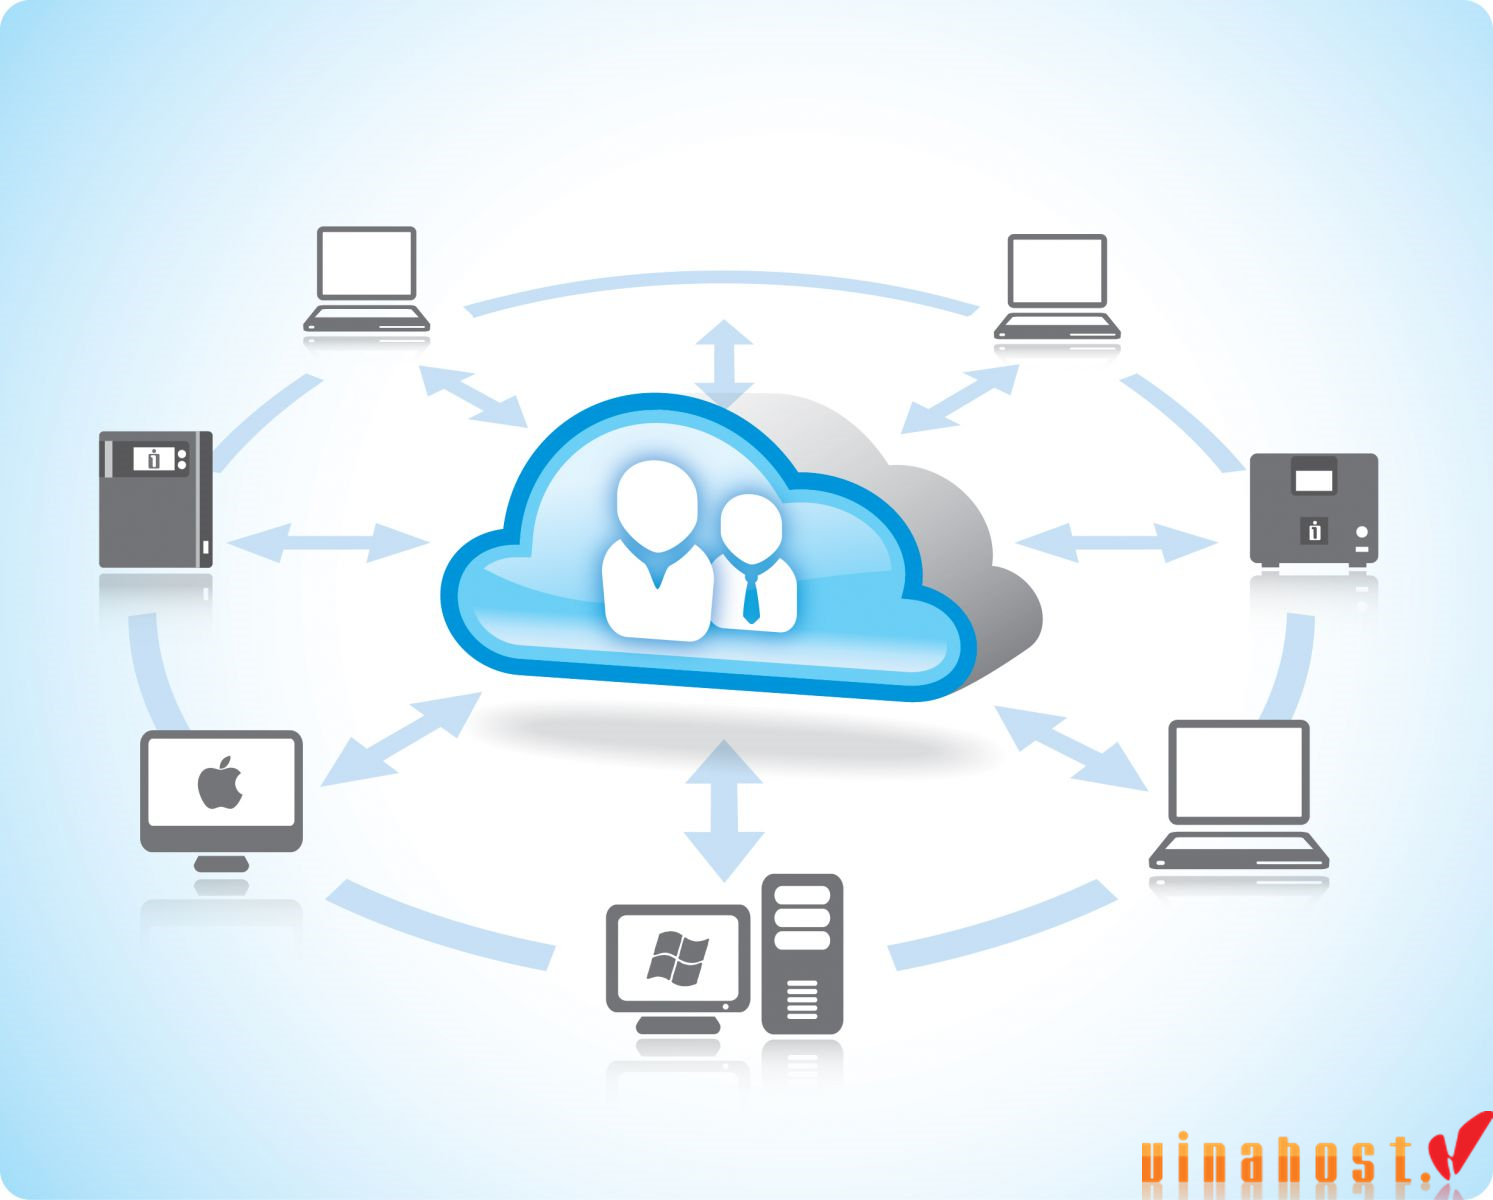 vinahost-Features-and-benefits-of-Vietnam-cloud-servers-hosting-part-2-2